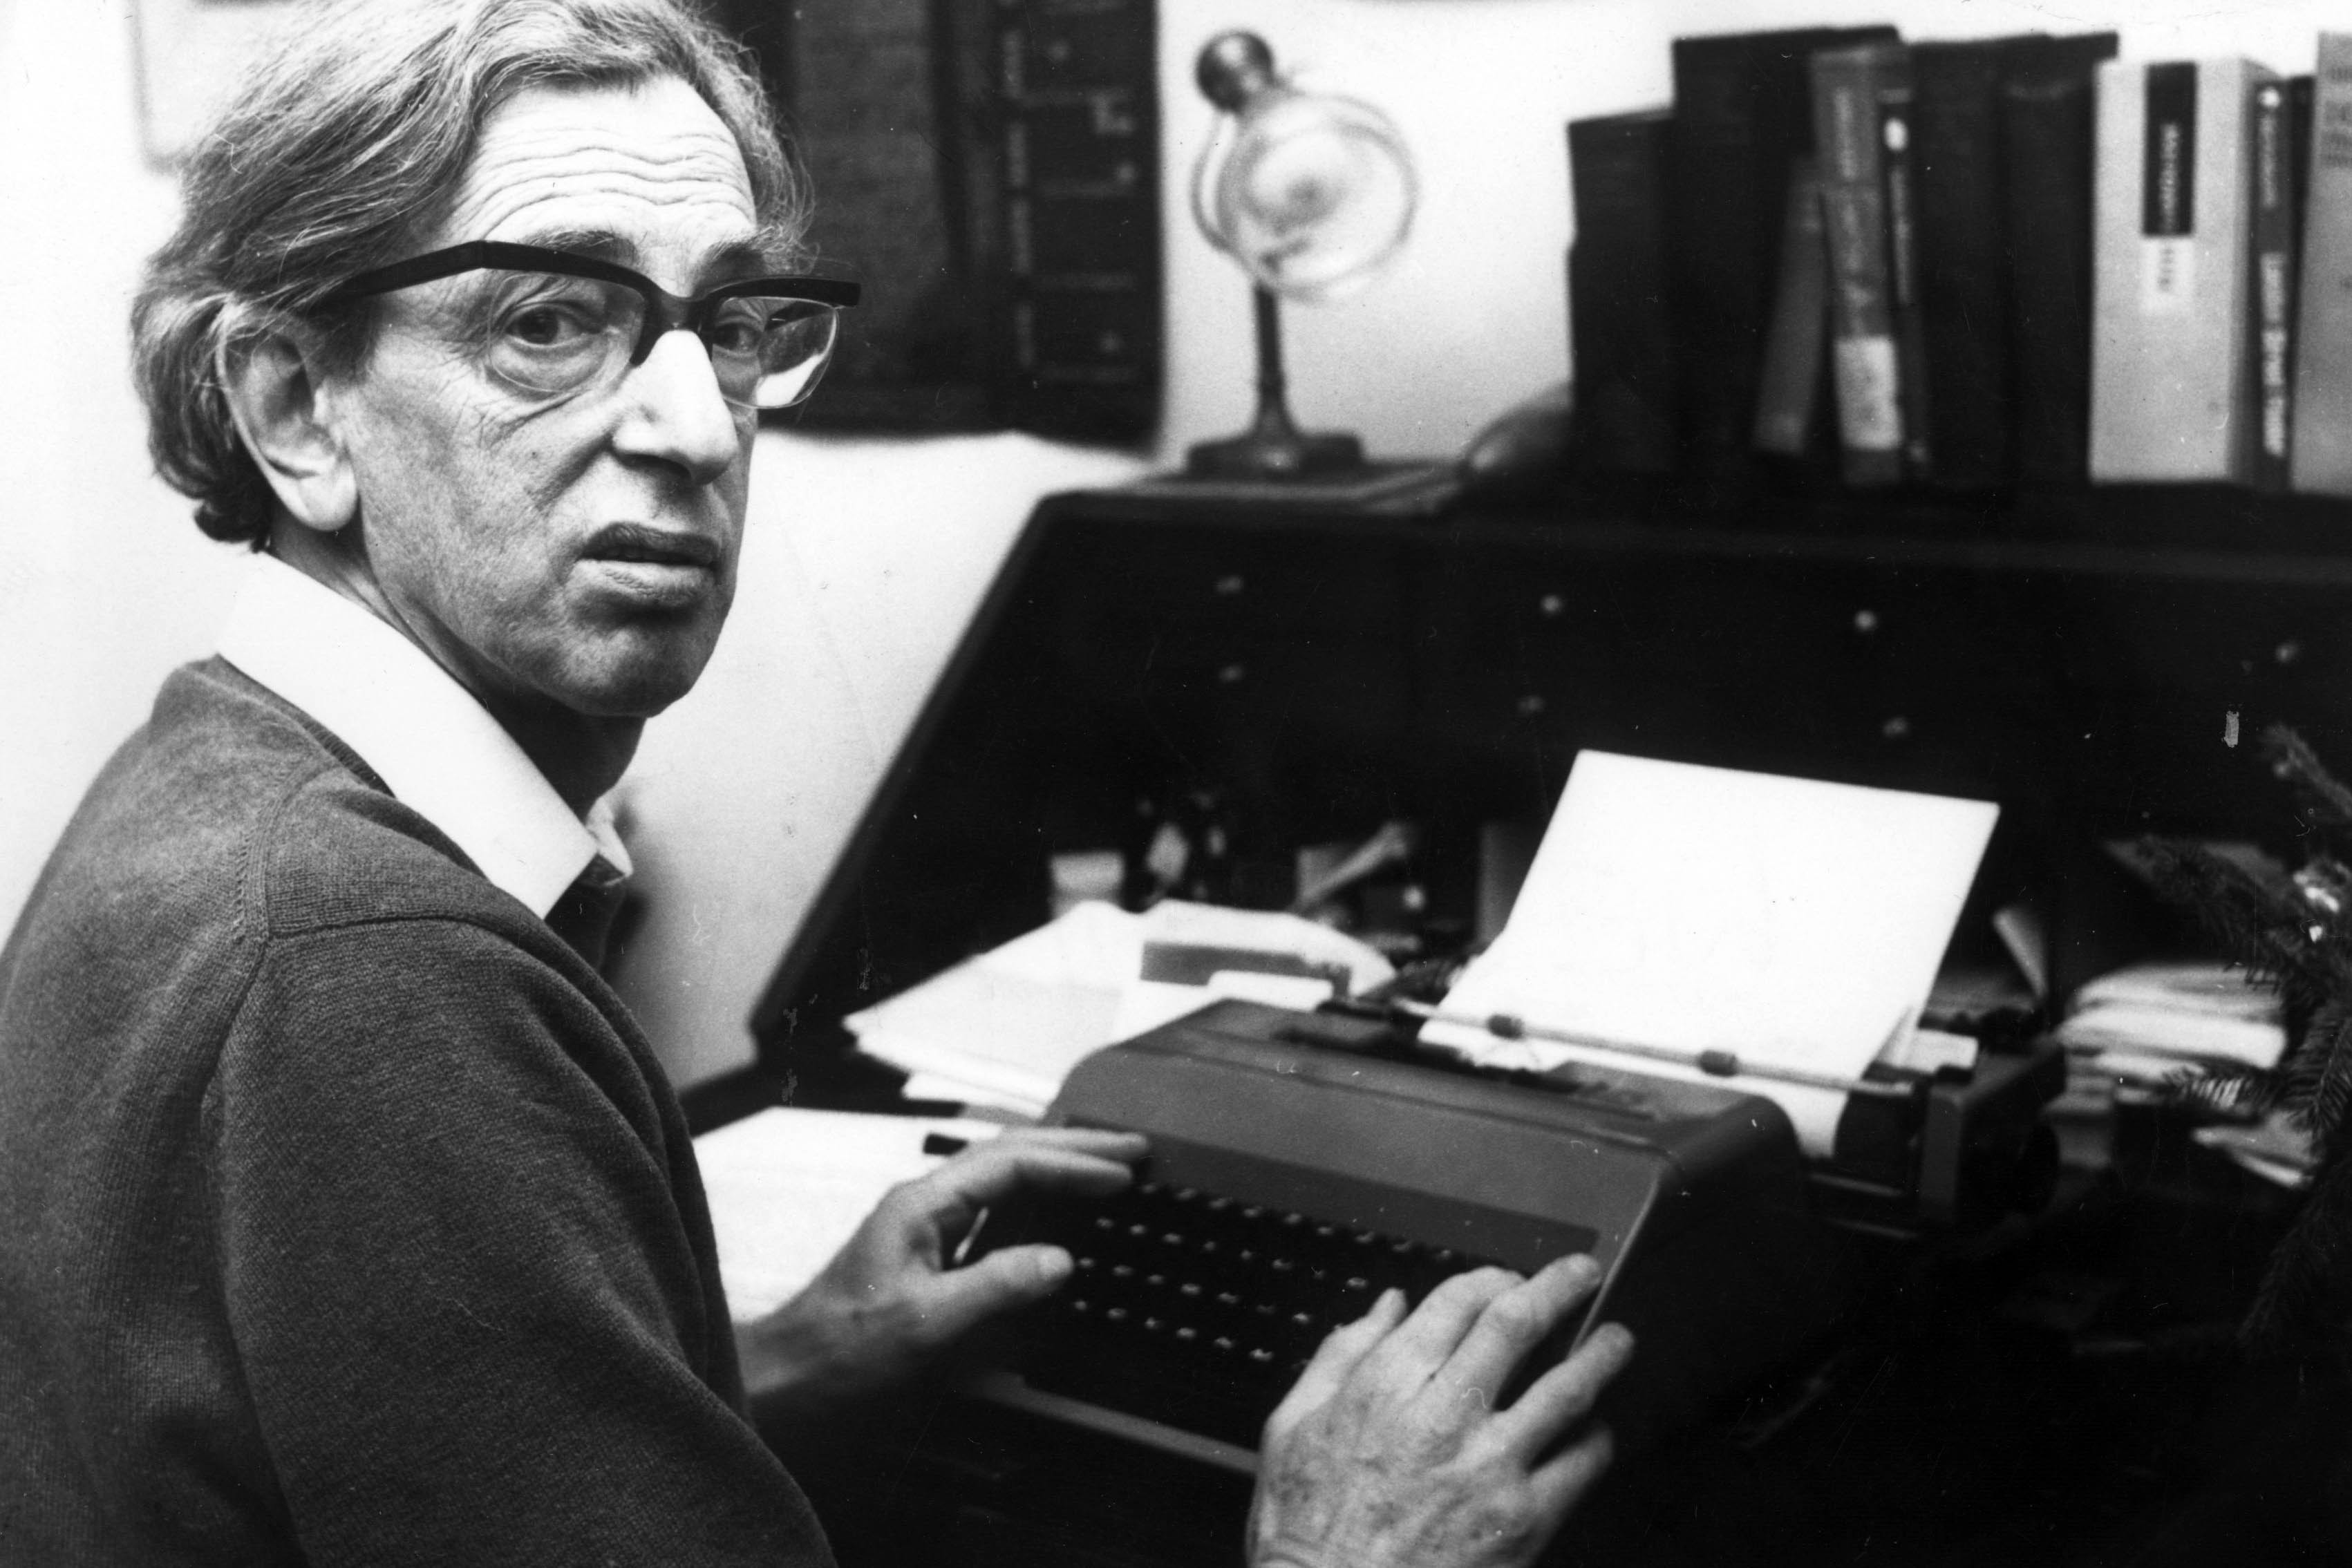 January 1976: British historian Eric Hobsbawm was totally dedicated to amassing knowledge and thinking deeply about broad historical trends, resulting in accessible and elegantly written books. (Photograph by Wesley/Keystone/Getty Images)